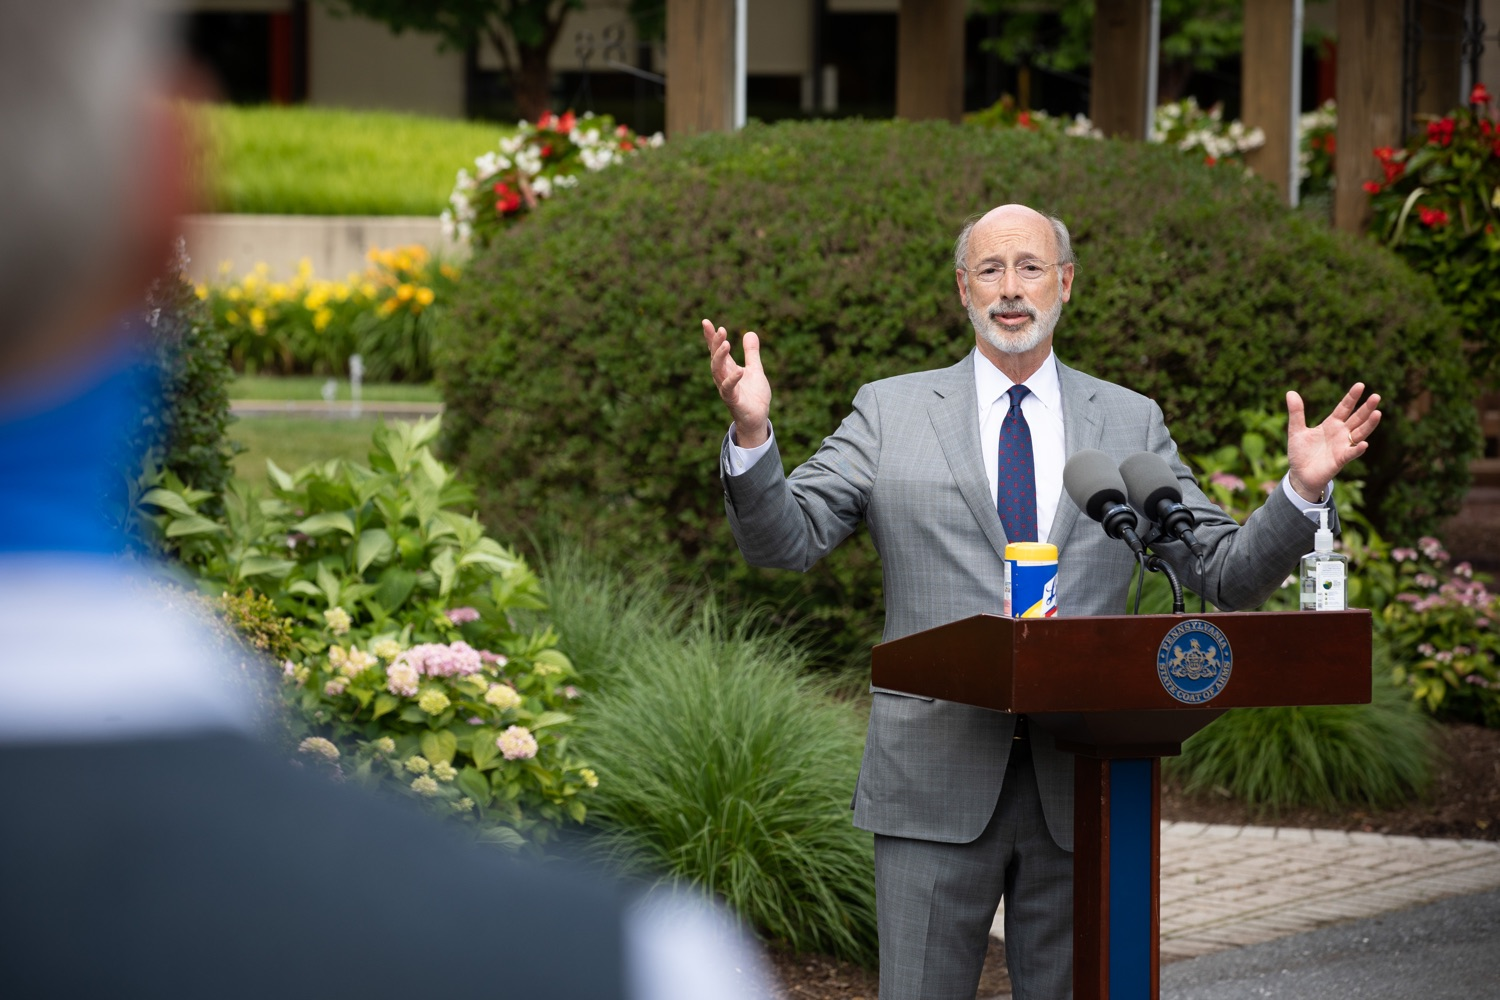 "<a href=""https://filesource.wostreaming.net/commonwealthofpa/photo/18093_gov-healthcare_workers_dz_11.jpg"" target=""_blank"">⇣ Download Photo<br></a>Pennsylvania Governor Tom Wolf answering questions from the press during his visit to Milton S. Hershey Medical Center. As the commonwealth continues its measured, phased reopening and COVID-19 case counts continue to decline, Governor Tom Wolf visited Penn State Milton S. Hershey Medical Center today to thank staff and learn more about how the facility is handling the pandemic and preparing for a possible resurgence in the fall.  Harrisburg, PA  June 24, 2020"